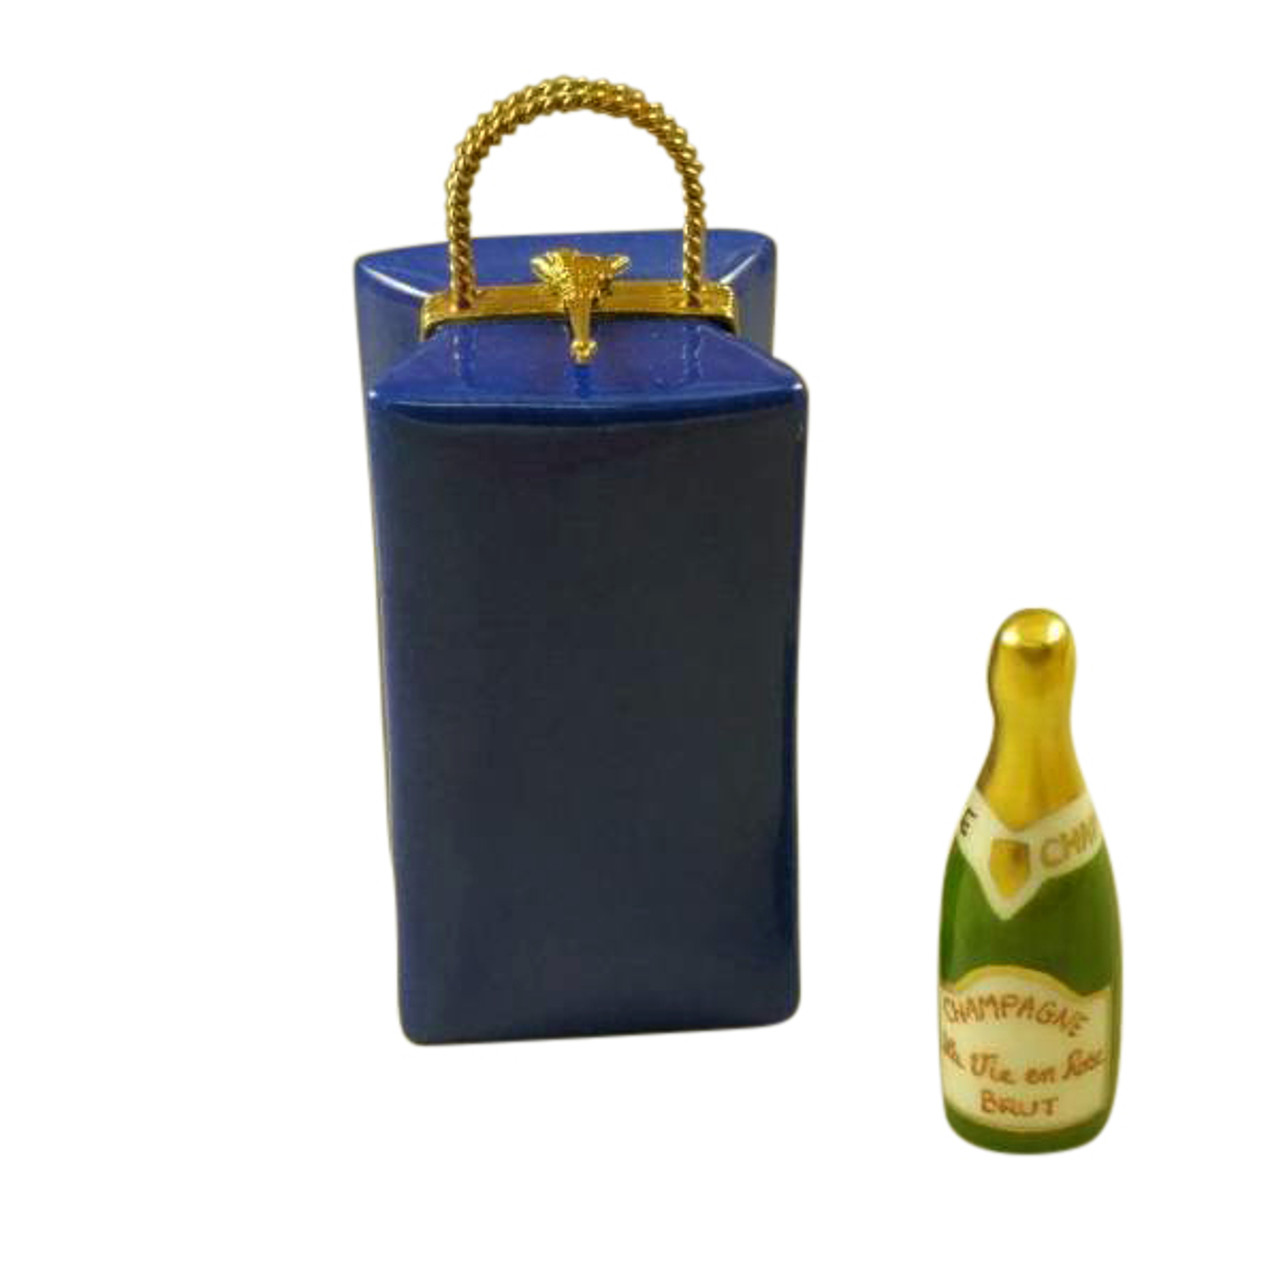 PARIS BY NIGHT GIFT BAG WITH CHAMPAGNE BOTTLE Limoges Box